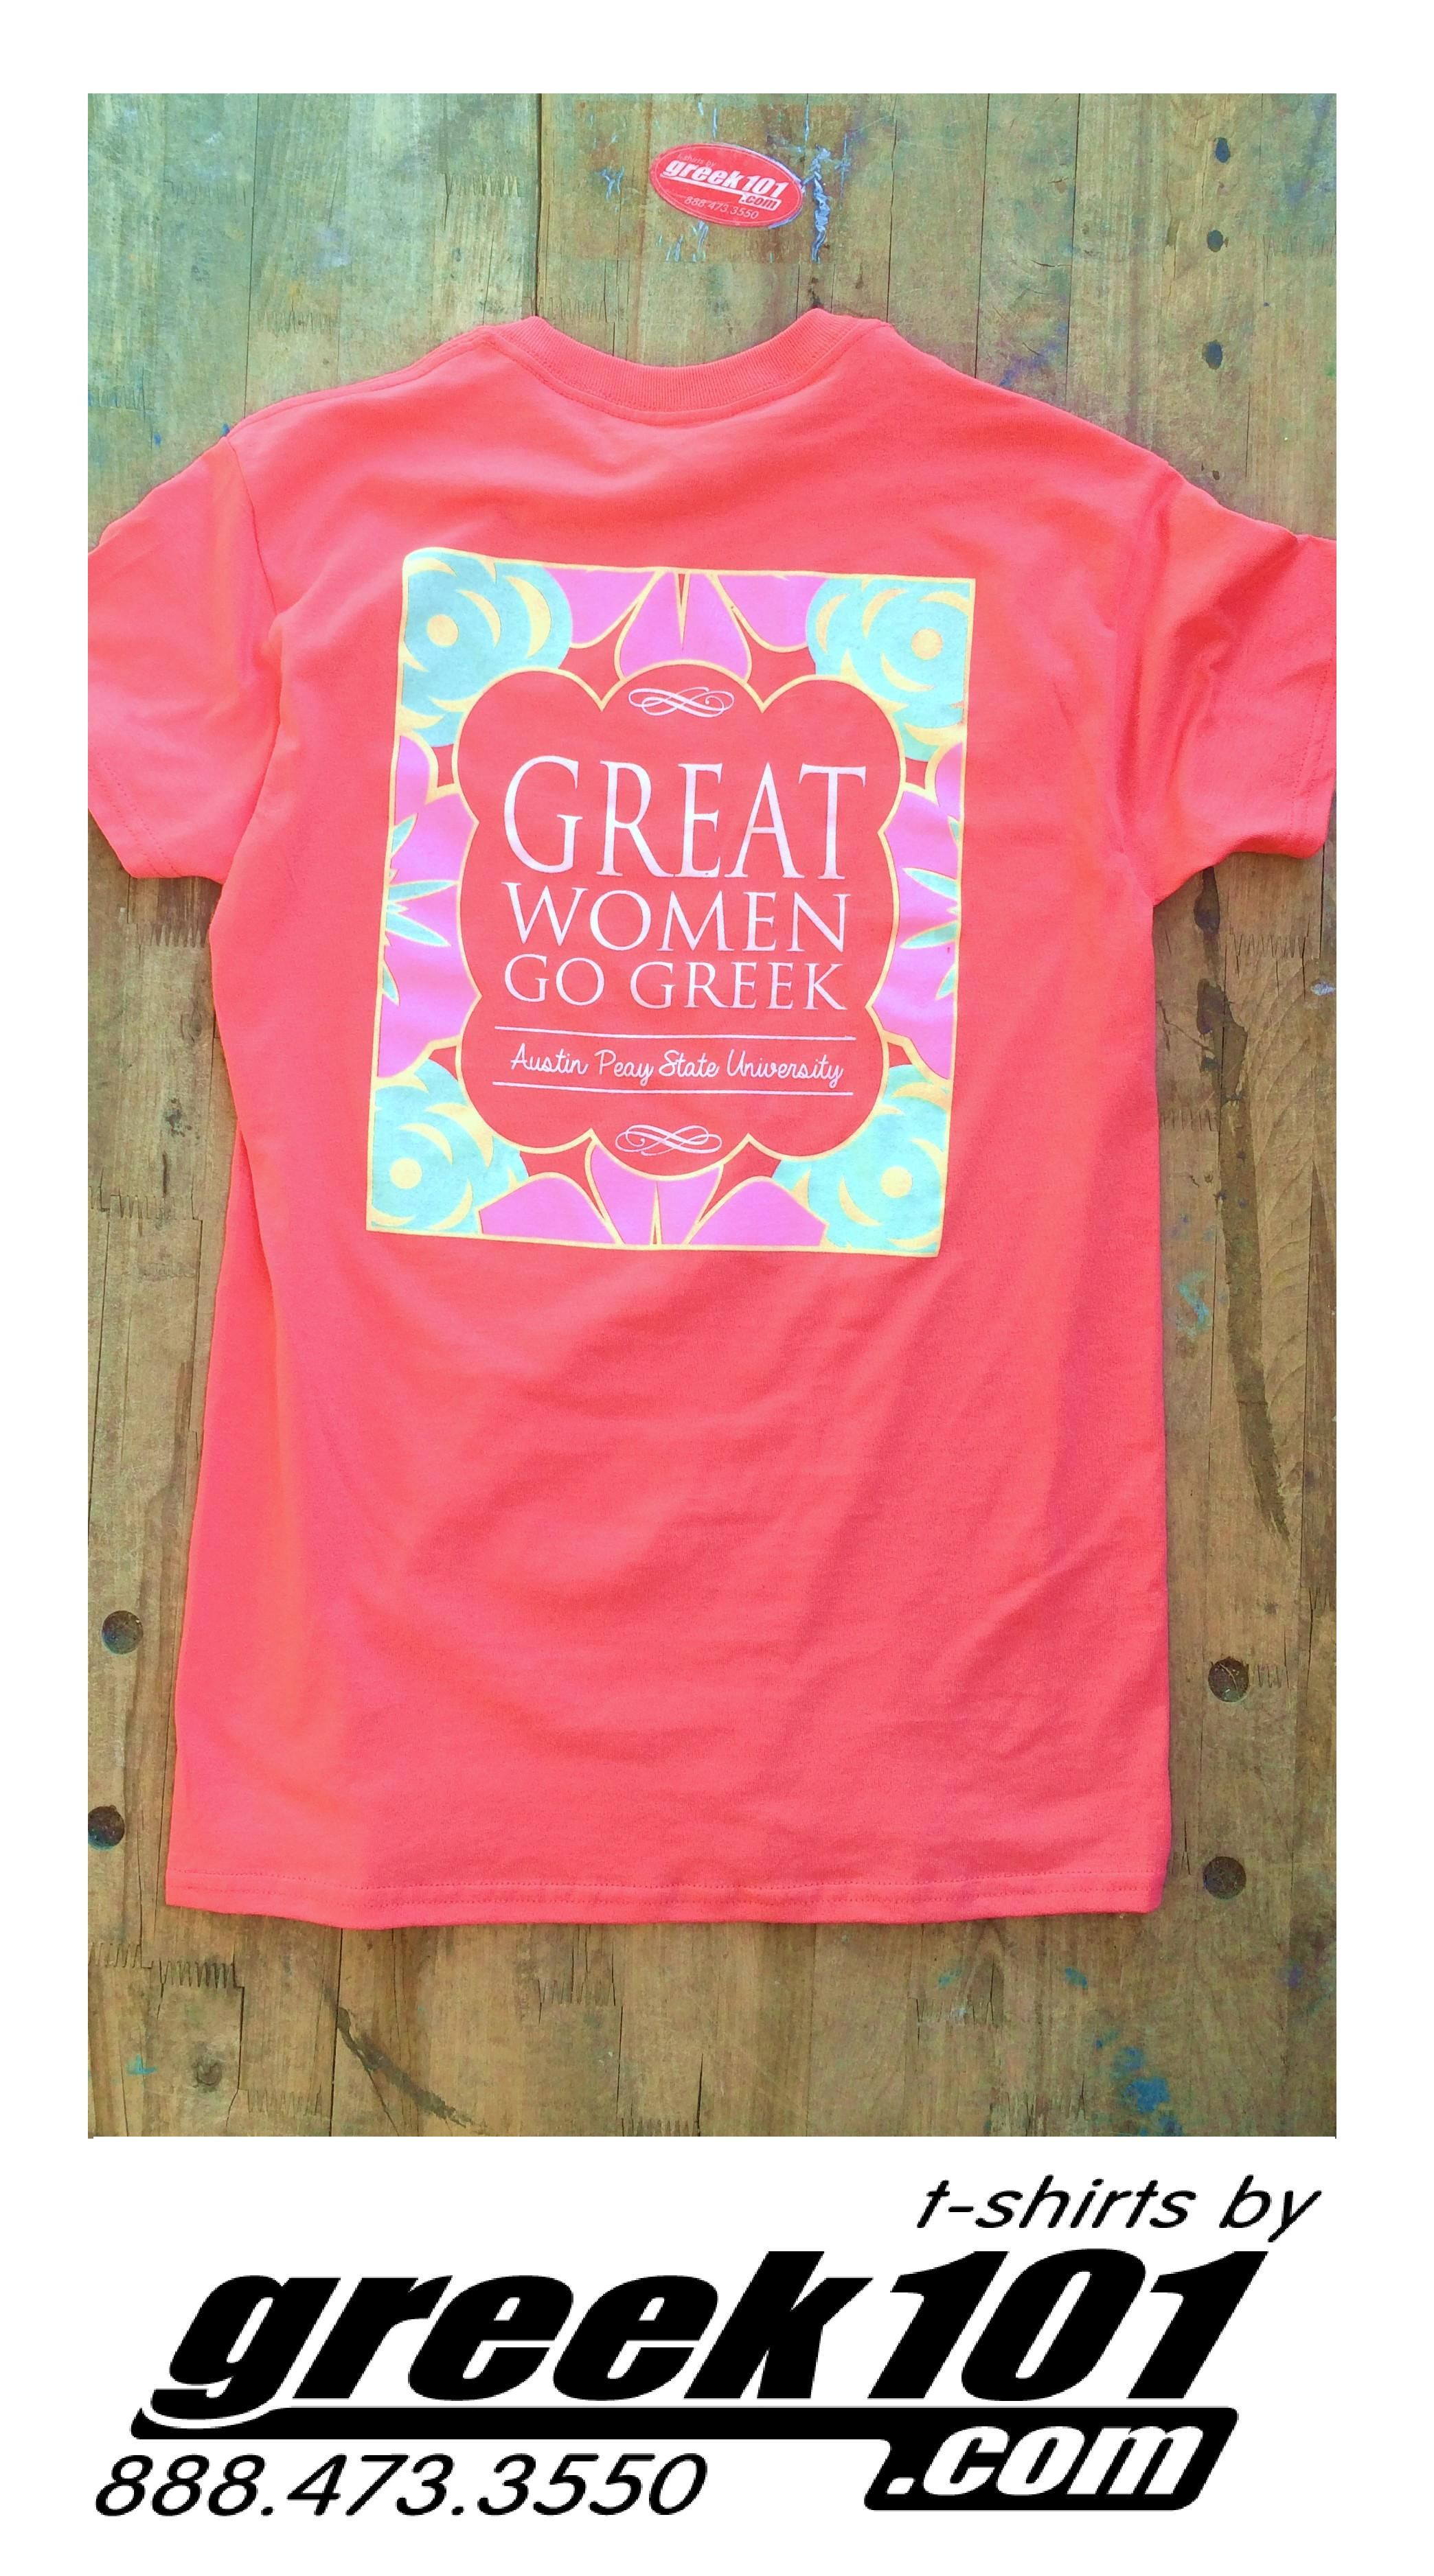 109f24cf Greek101 Panhellenic Sorority Recruitment T-Shirt Great Women Go Greek,  Coral Gildan Shirt with mint, yellow, and pink ink. visit Greek101.com call  ...